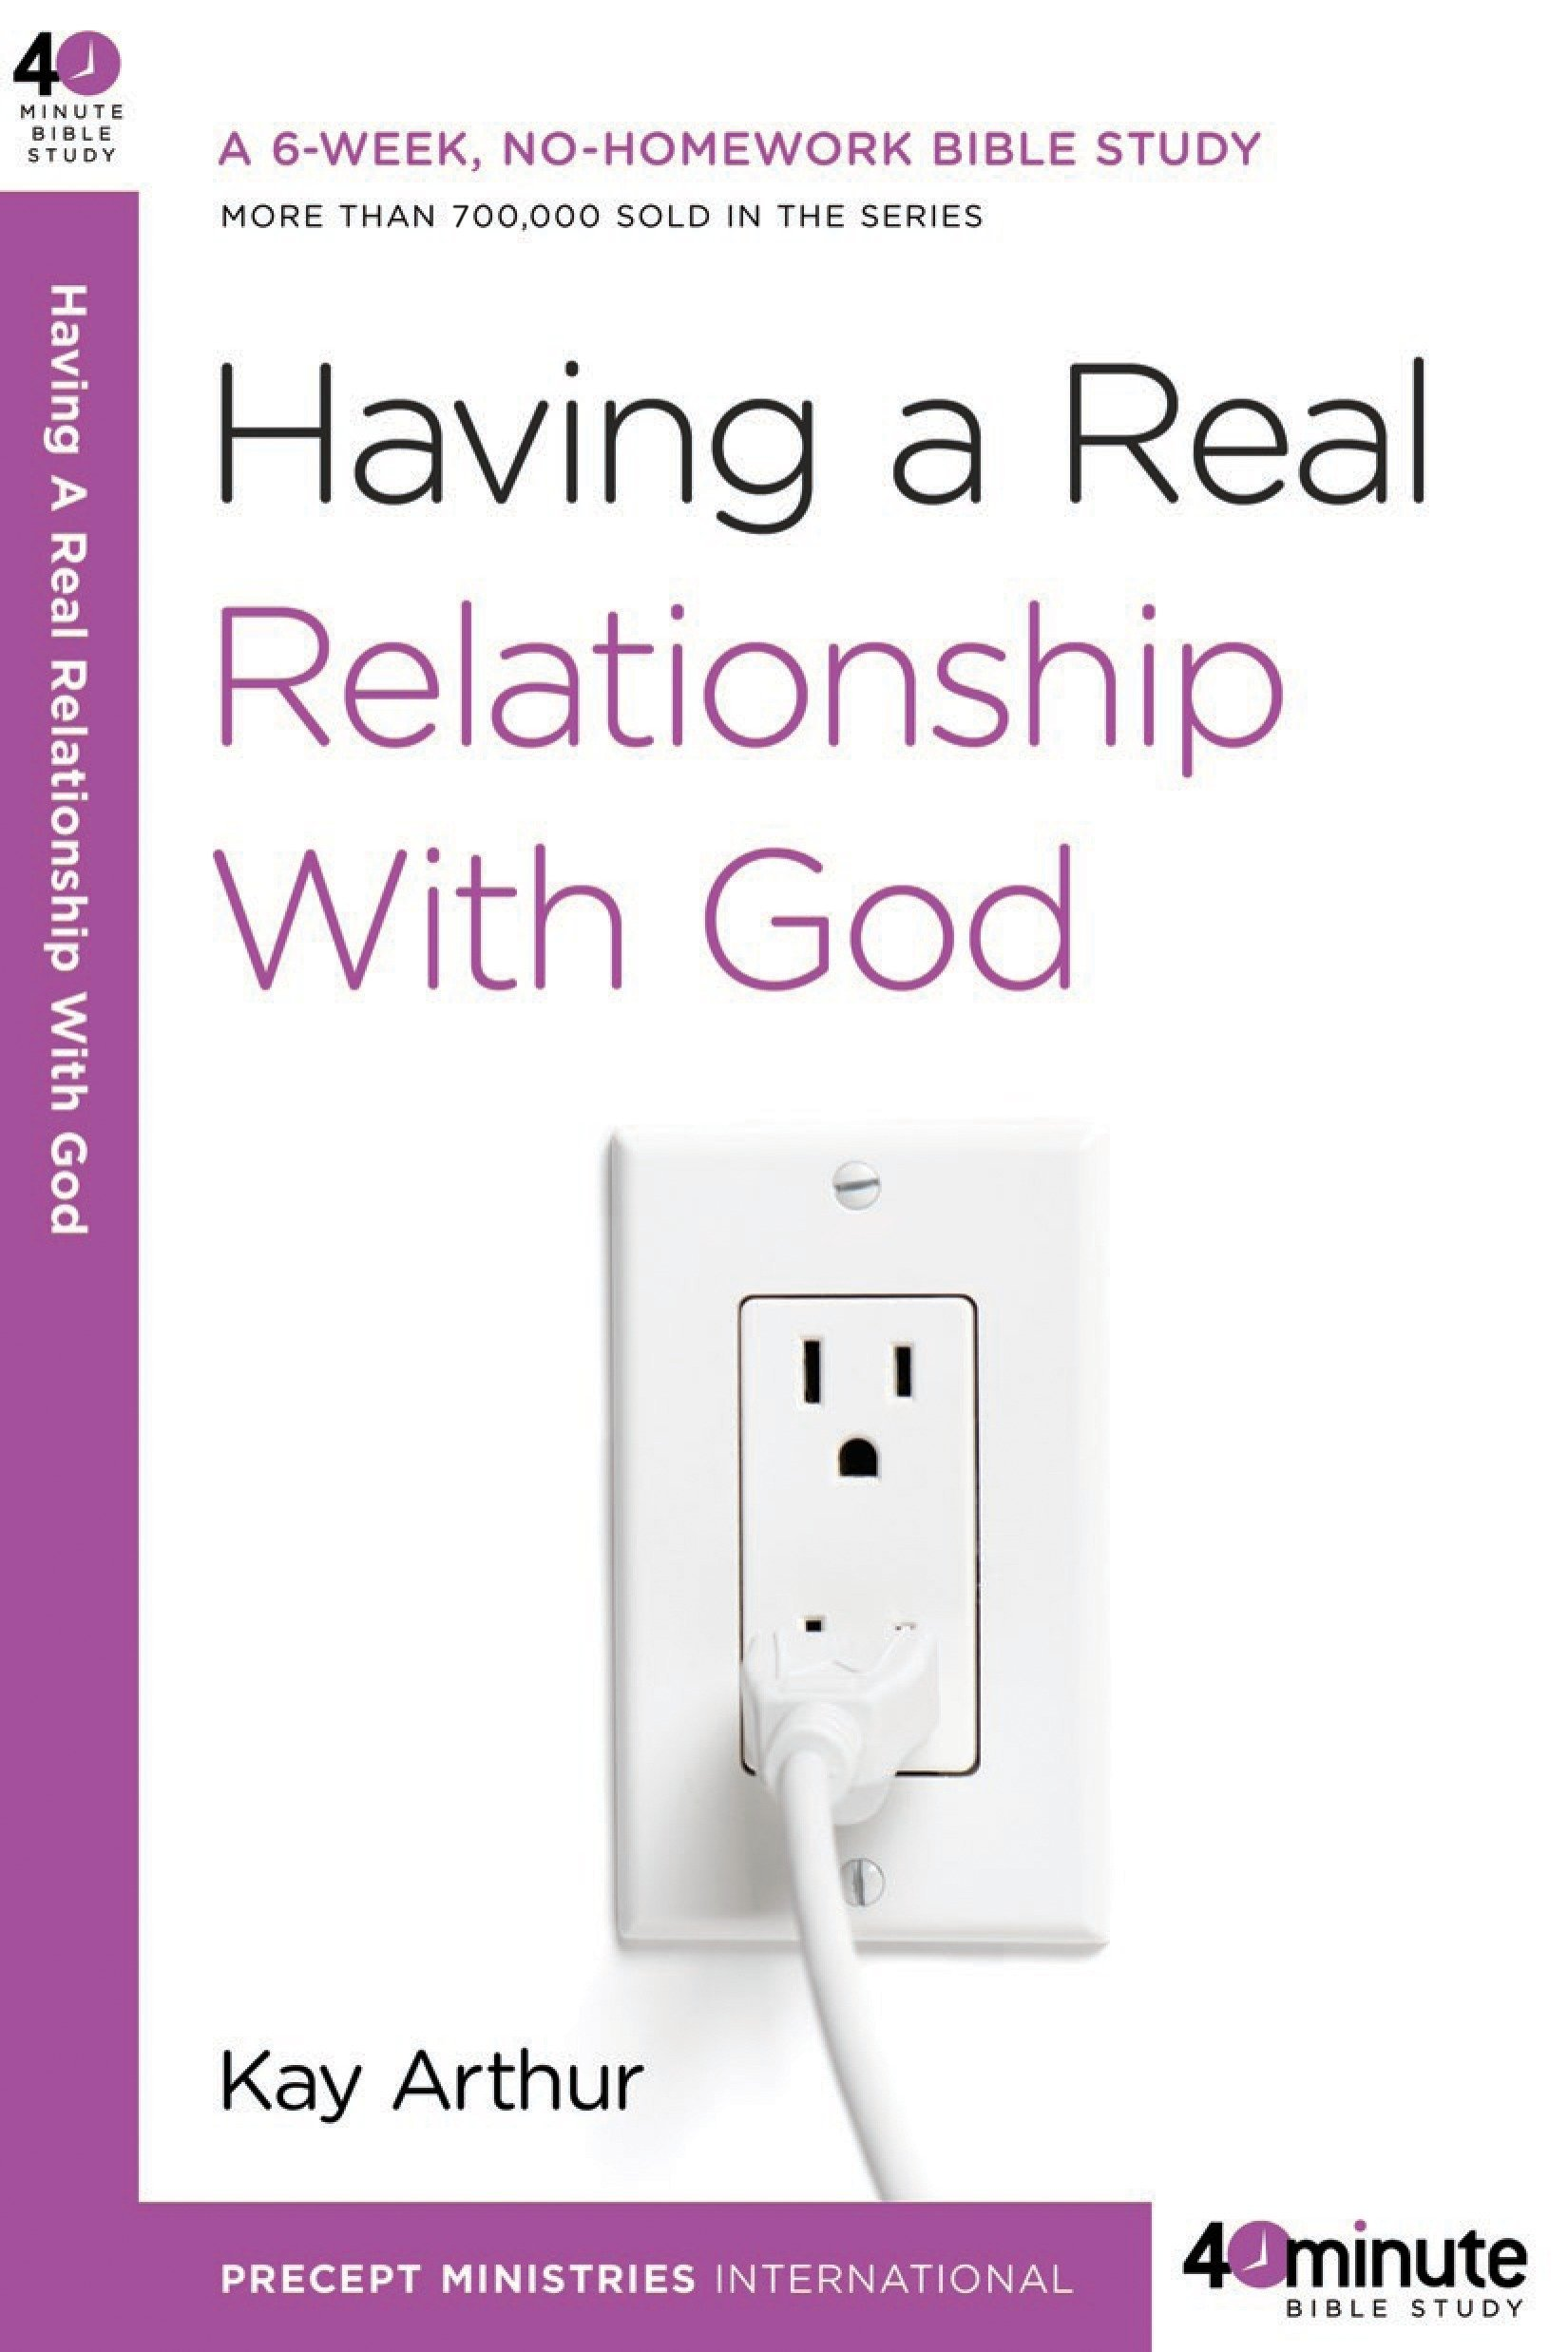 Having a Real Relationship with God (40-Minute Bible Studies) pdf epub